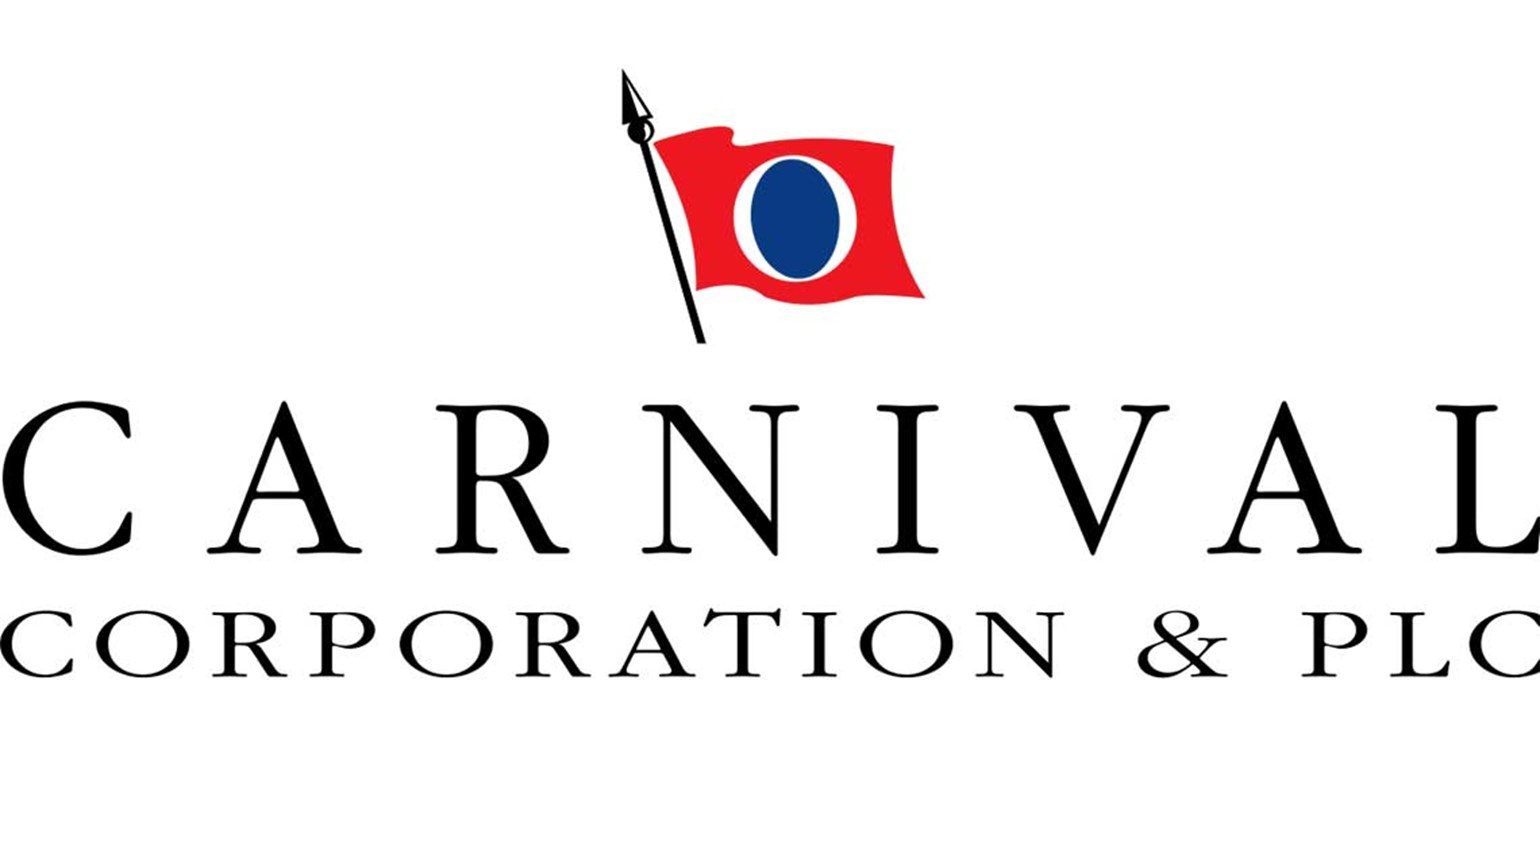 Carnival Corp. orders 9 ships to be built from 2019 to 2022